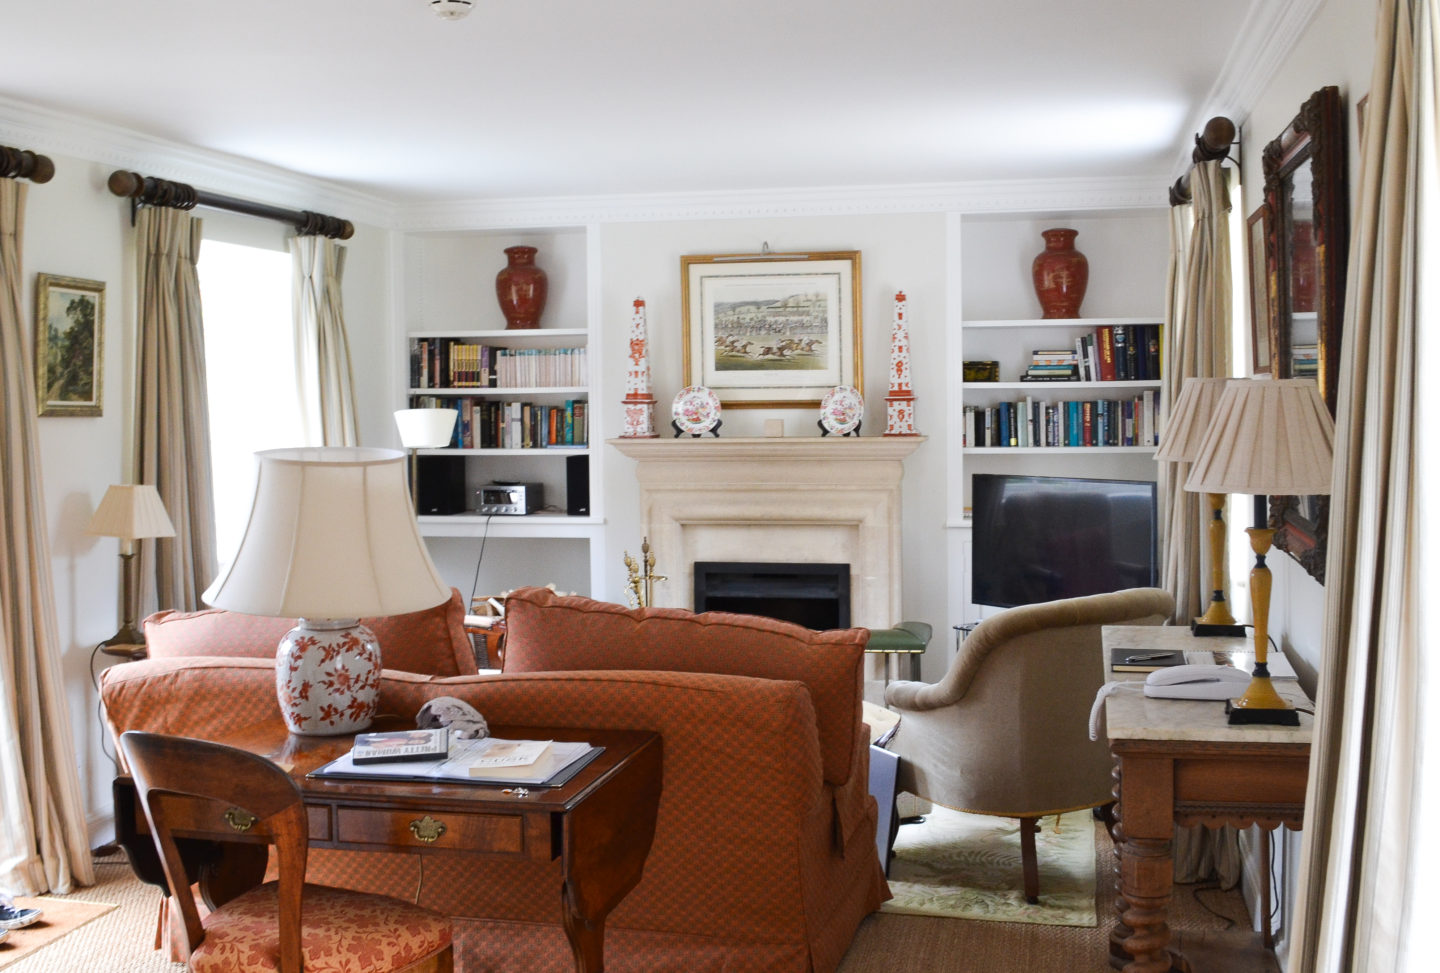 Review Bruern cottages cotswolds